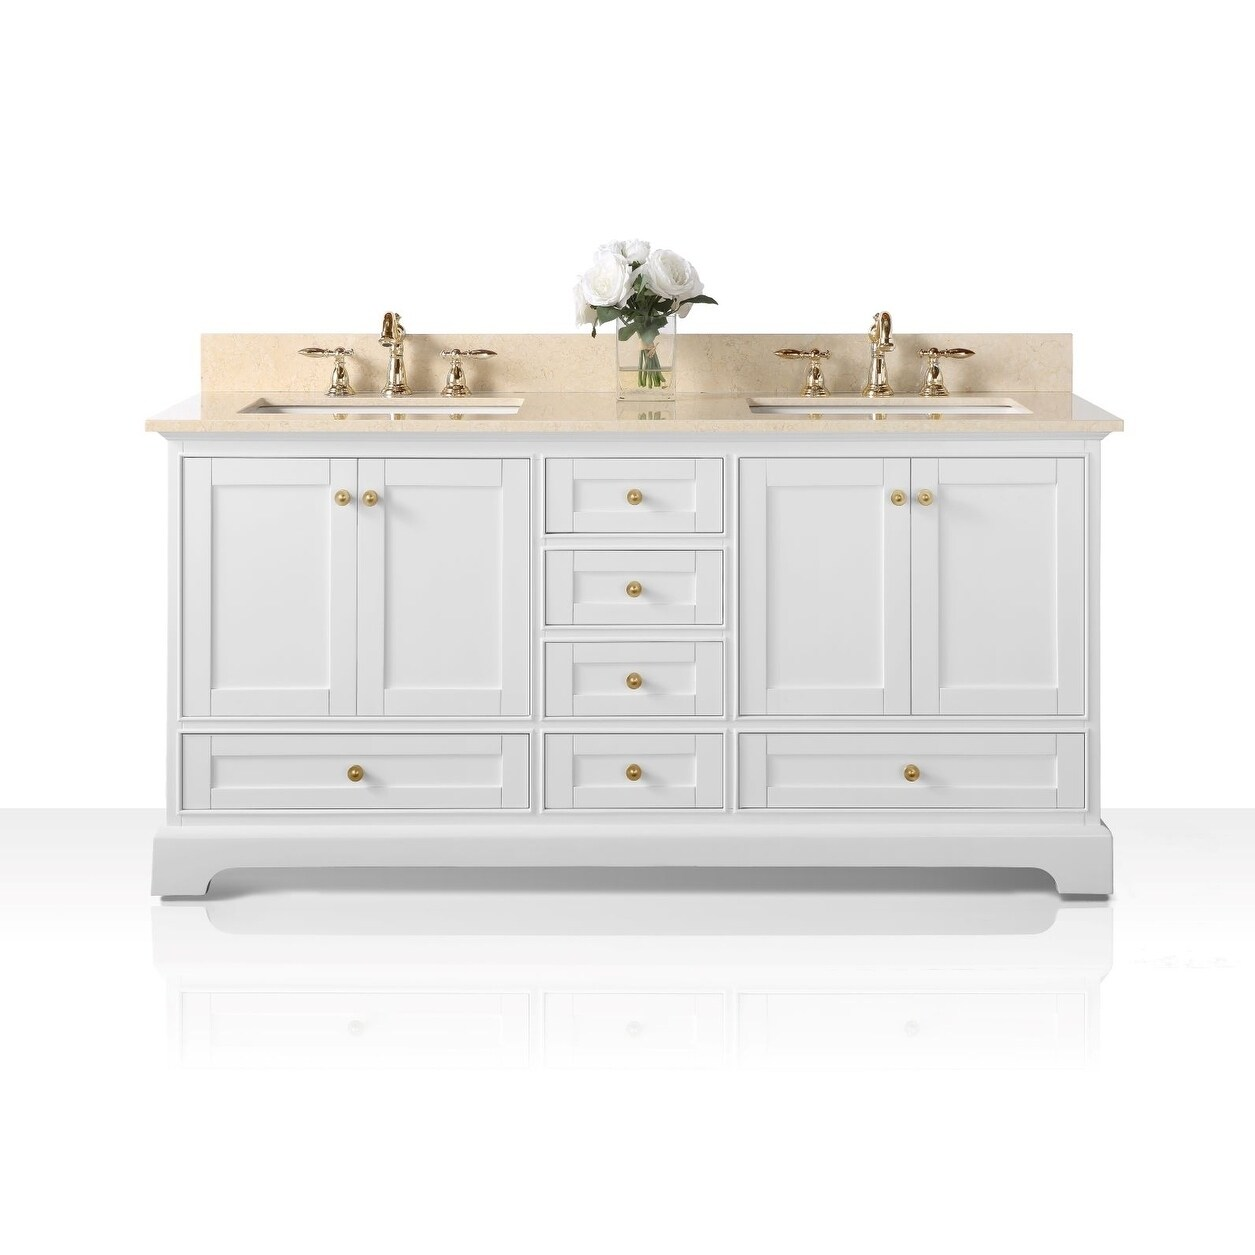 Ancerre Designs Audrey White Birch with Beige Galala Marble Top and Goldtone Hardware 72-inch White Vanity